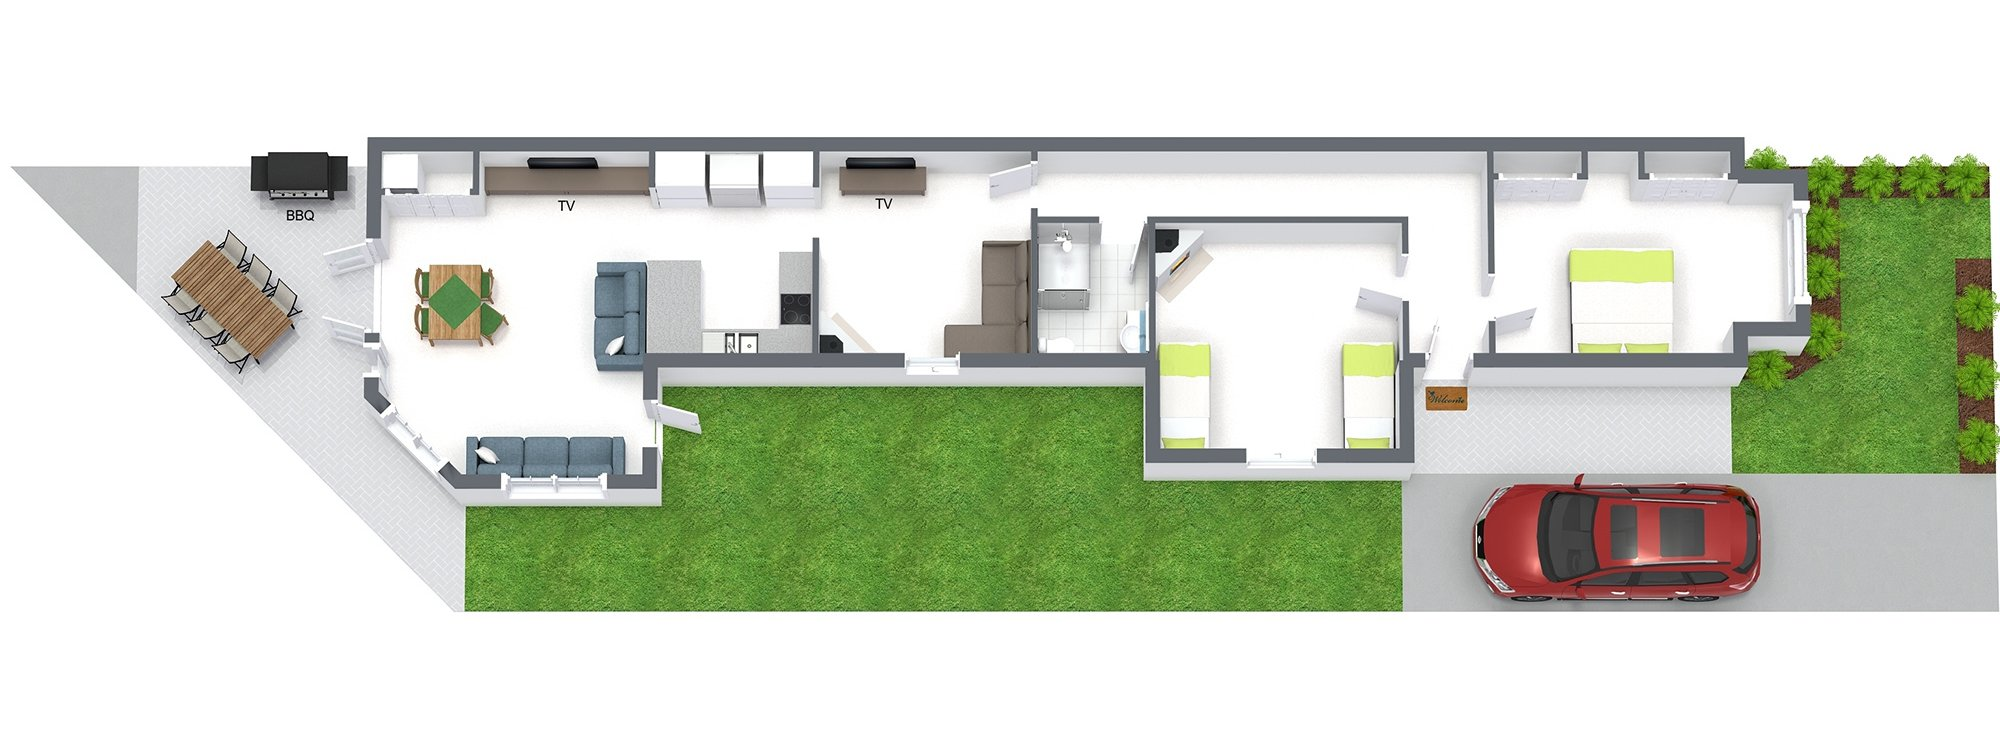 Elwood Beaches 3 - Elwood - Floorplan 2000px